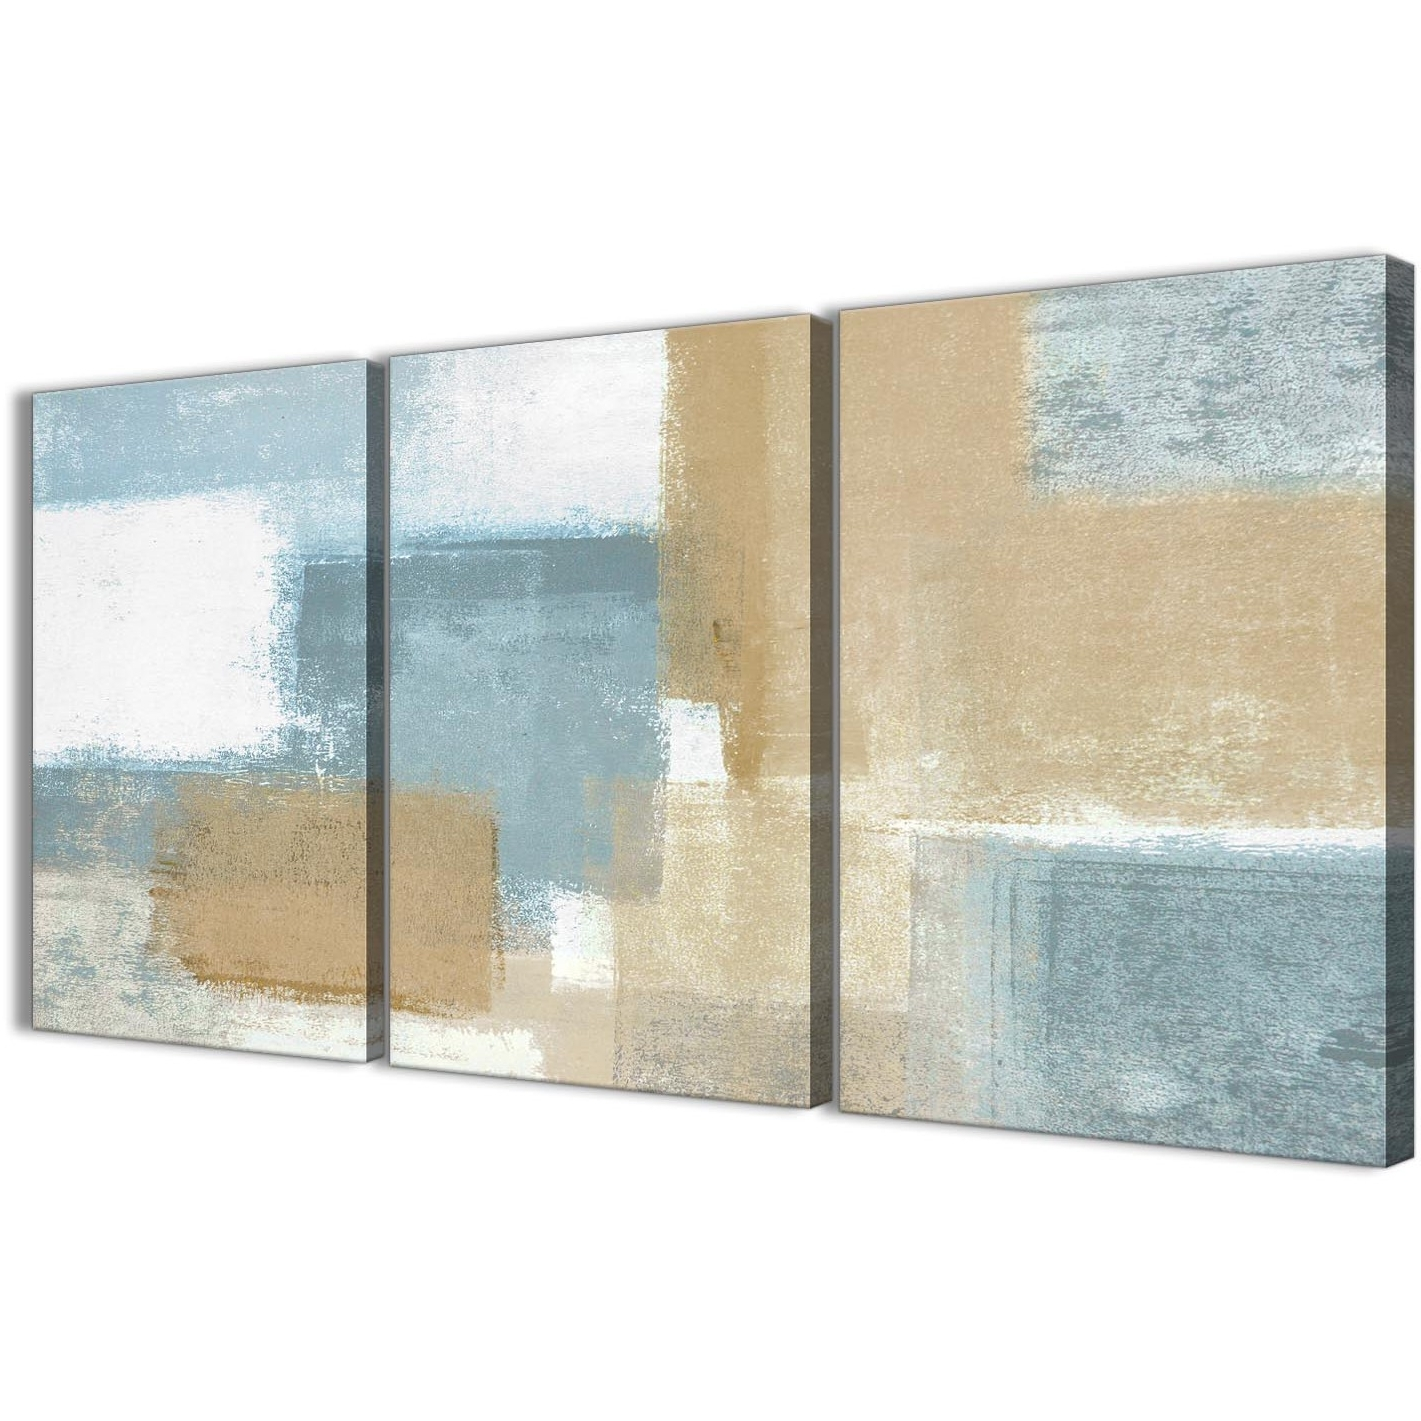 Blue Beige Brown Abstract Painting Canvas Wall Art Print – Multi With Widely Used Blue And Brown Canvas Wall Art (View 13 of 15)